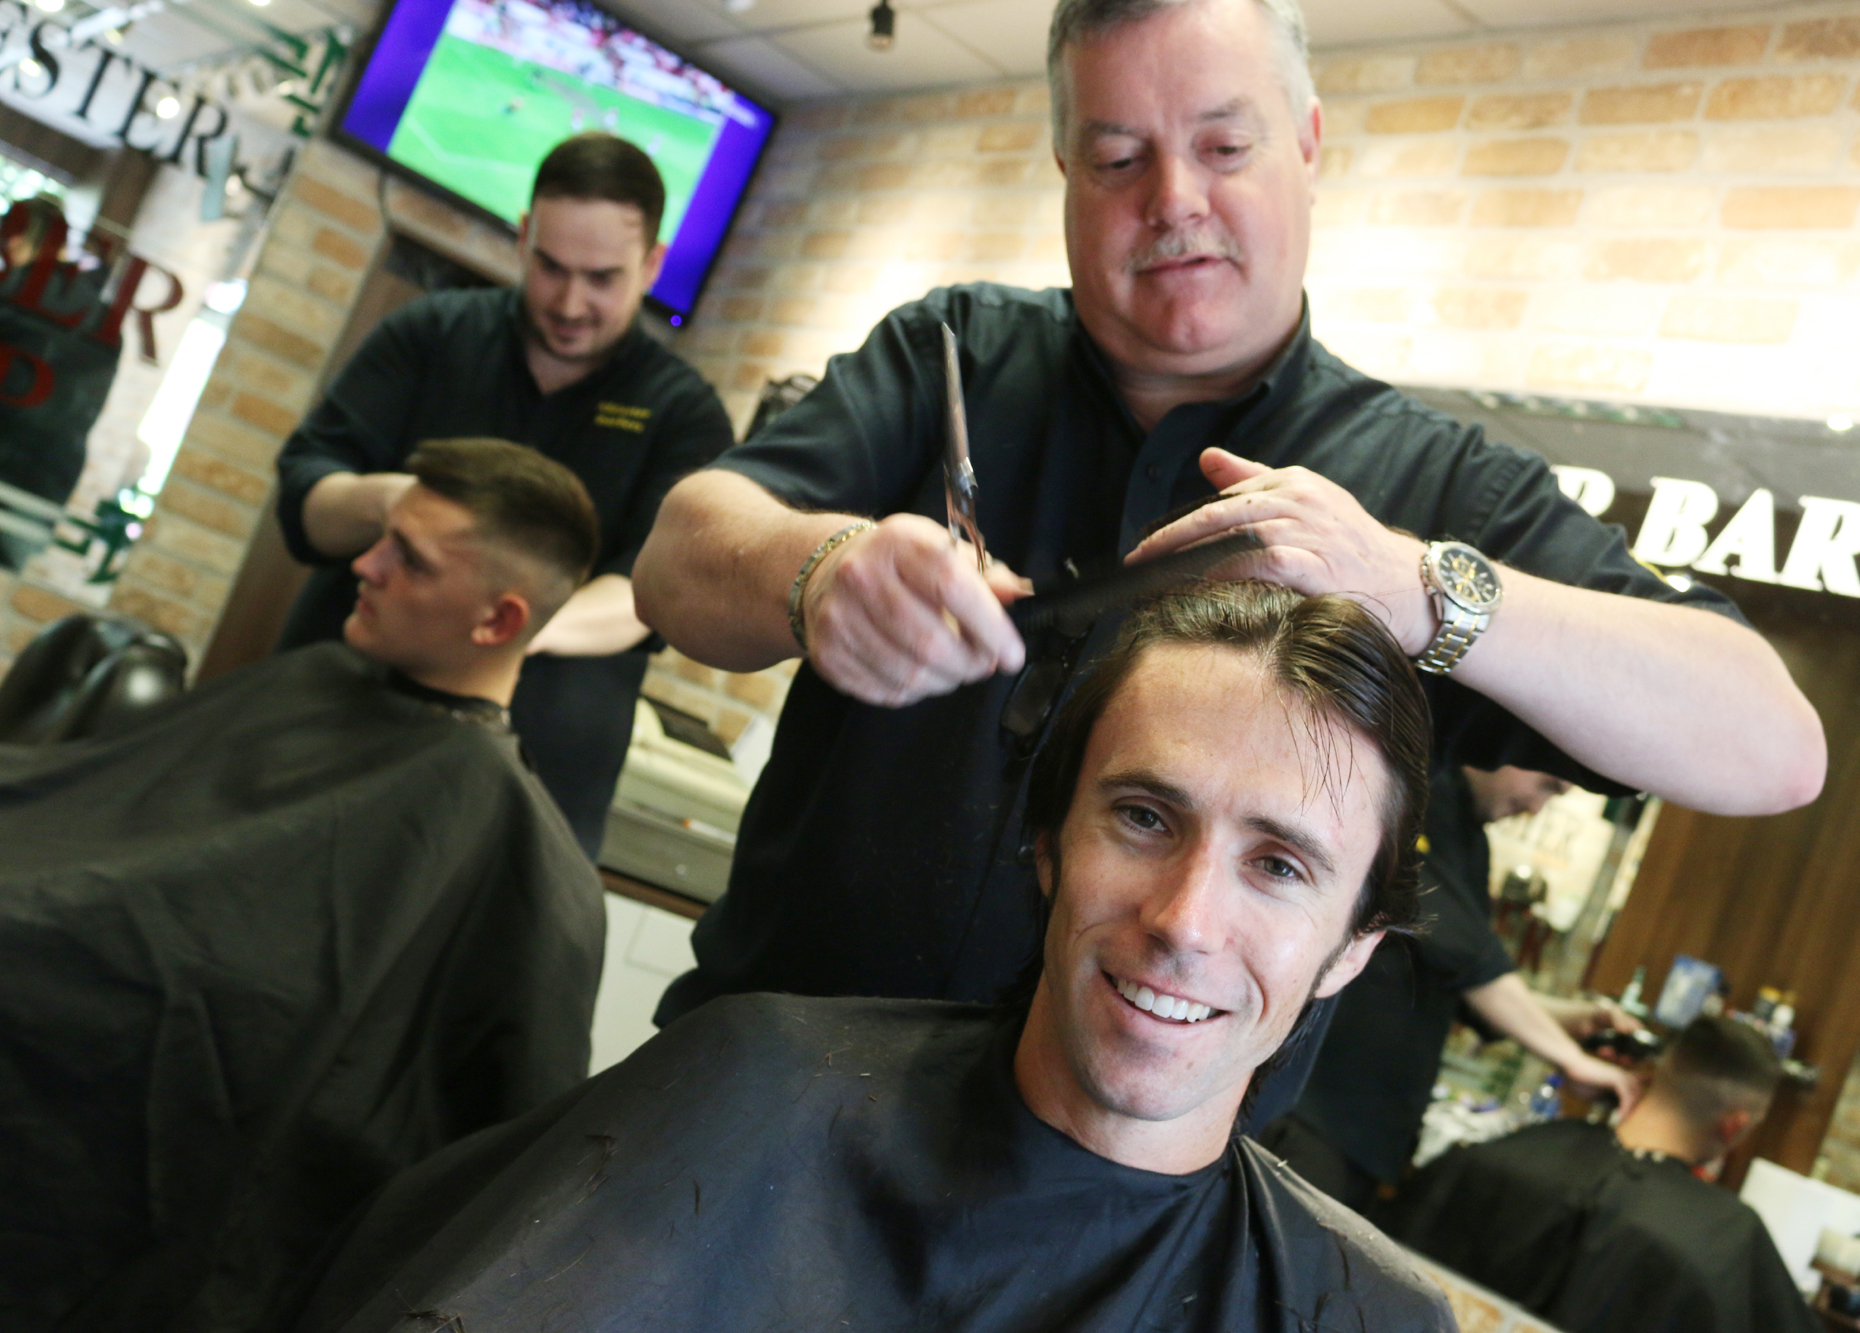 Olympian Mick Clohisey gets his haircut at Killester Barbers. Mick will be participating in the Men's Marathon on August 21st at this year's Olympics in Rio de Janeiro. Photo taken June 10th 2016. Thanks to Derek and Dave at Killester Barbers for allowing me to take the photo.